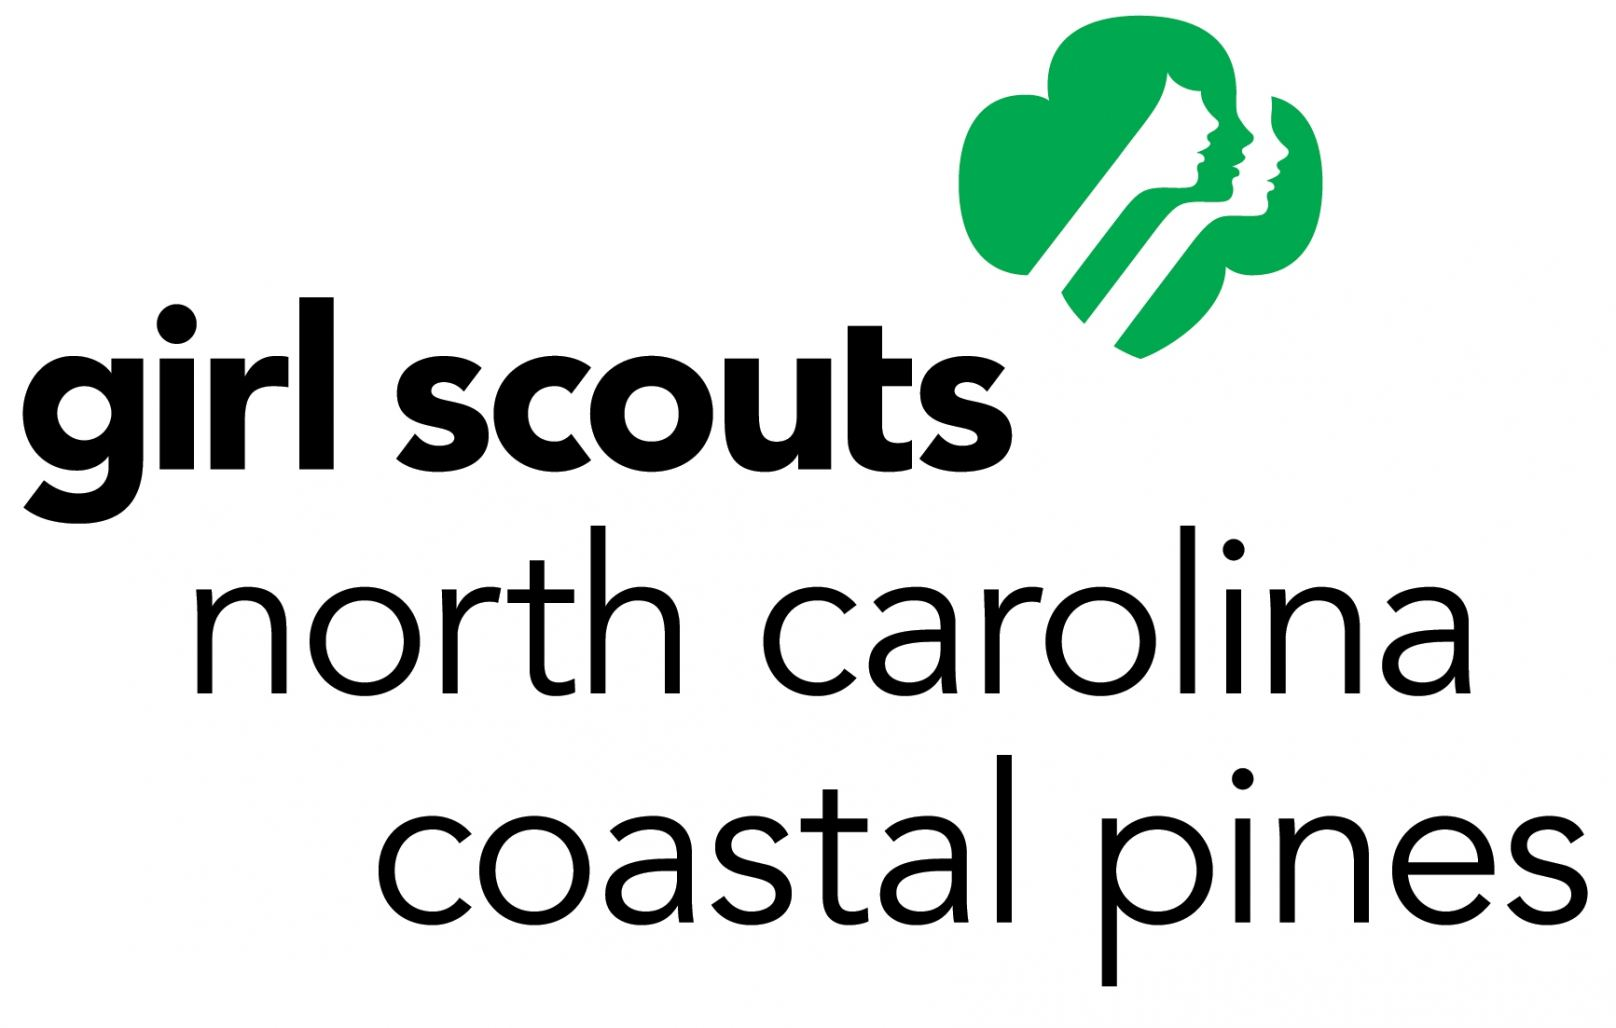 Girl Scouts - North Carolina Coastal Pines